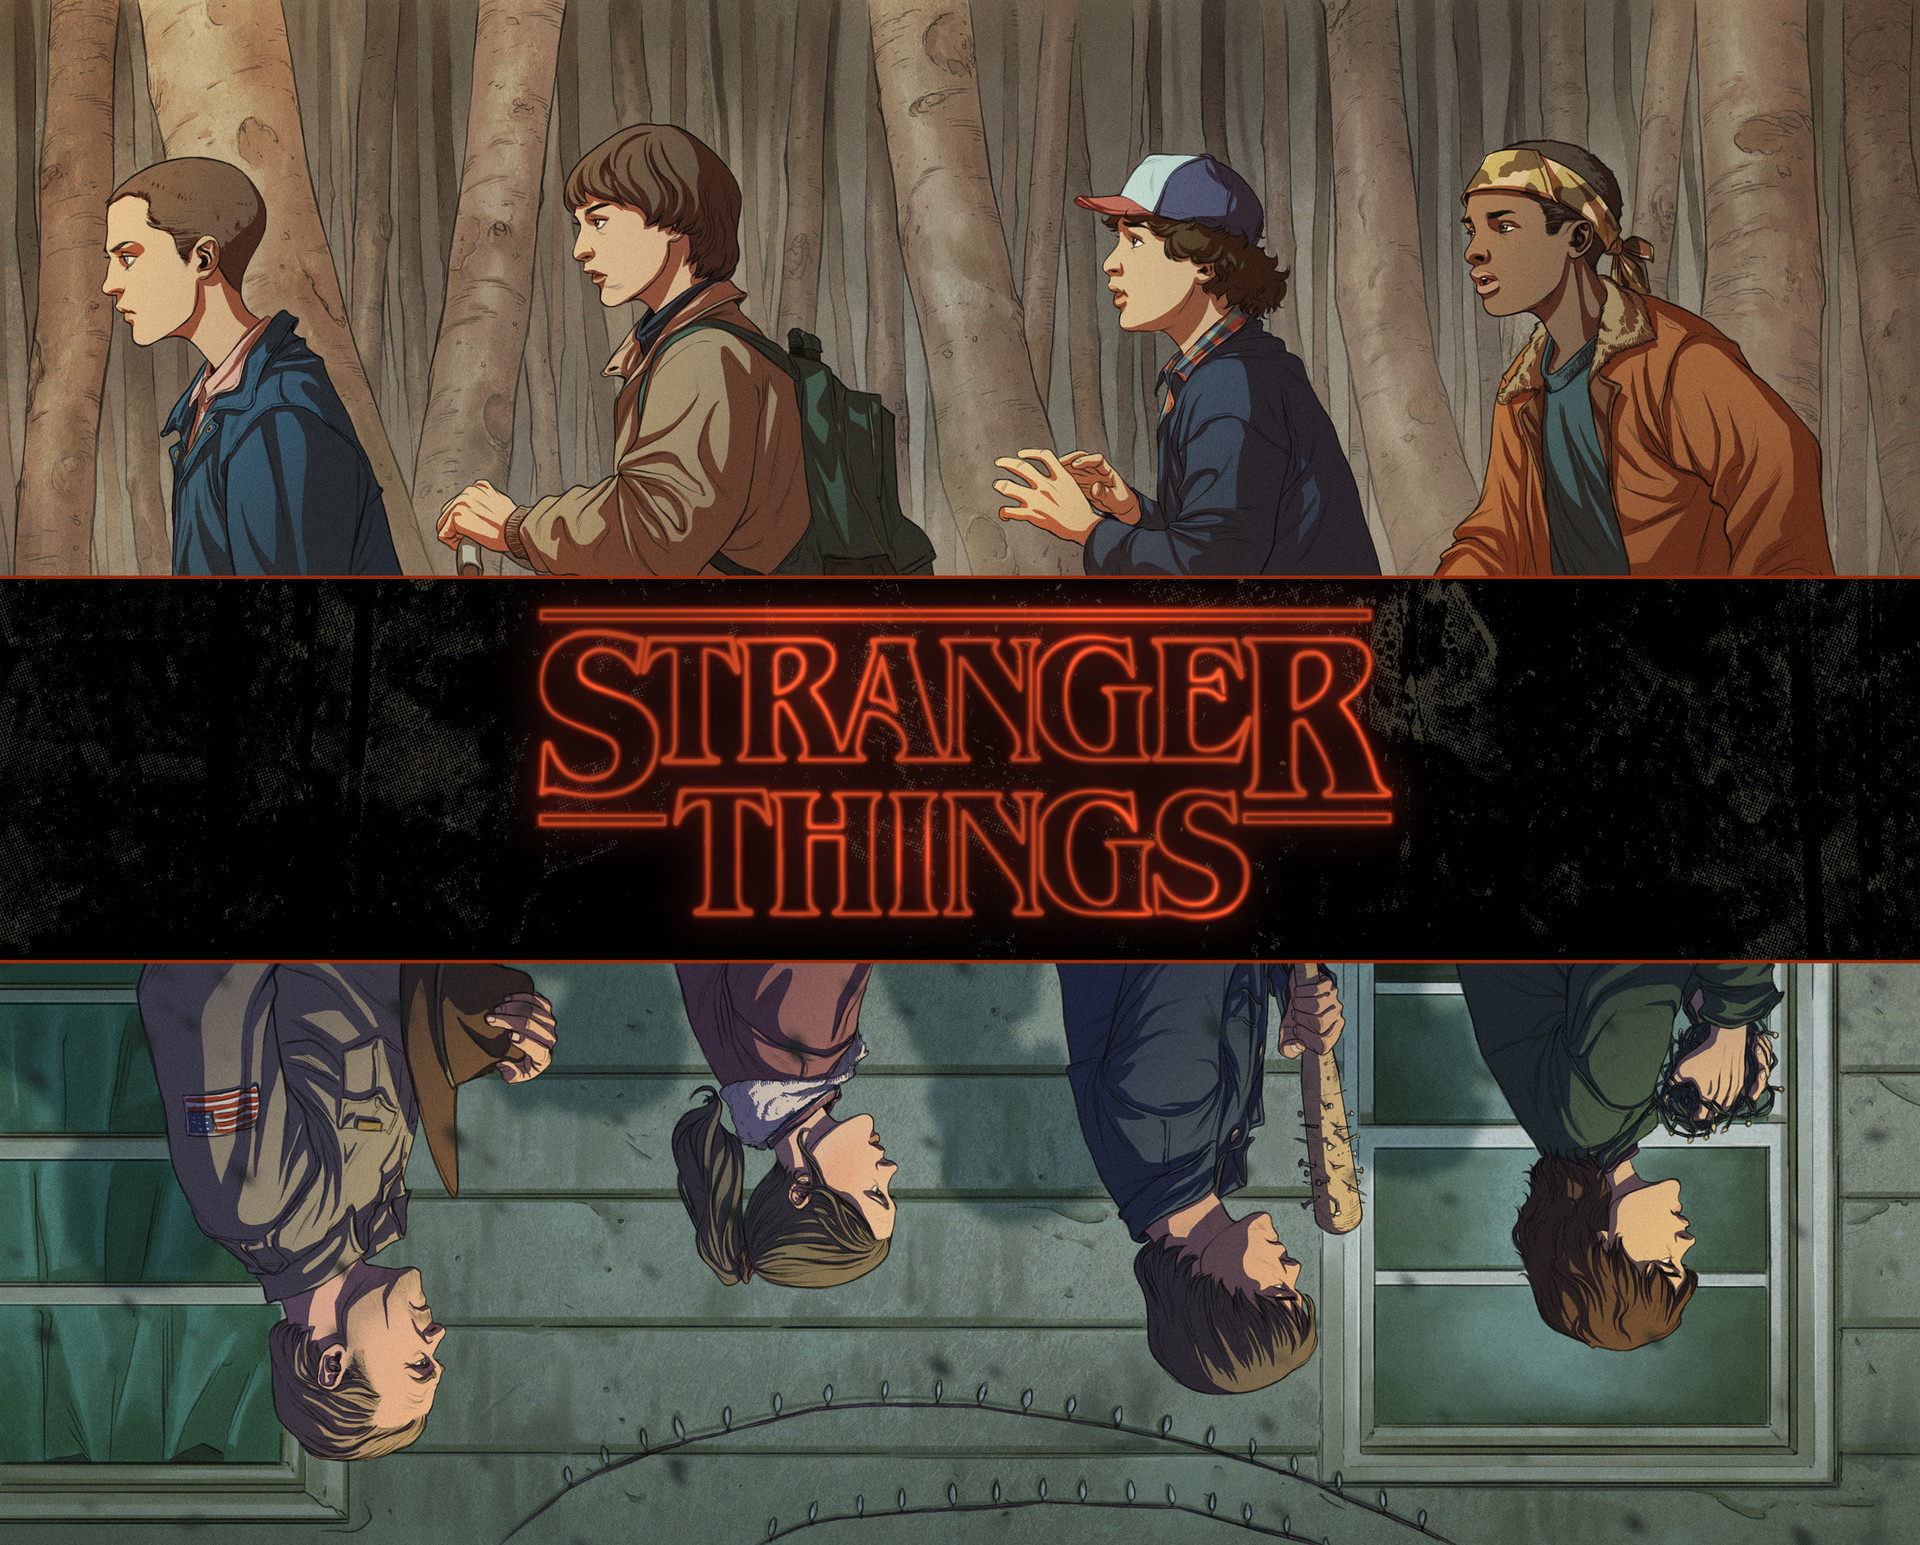 Stranger Things Wallpaper 72 Immagini Inspirational Interior Style